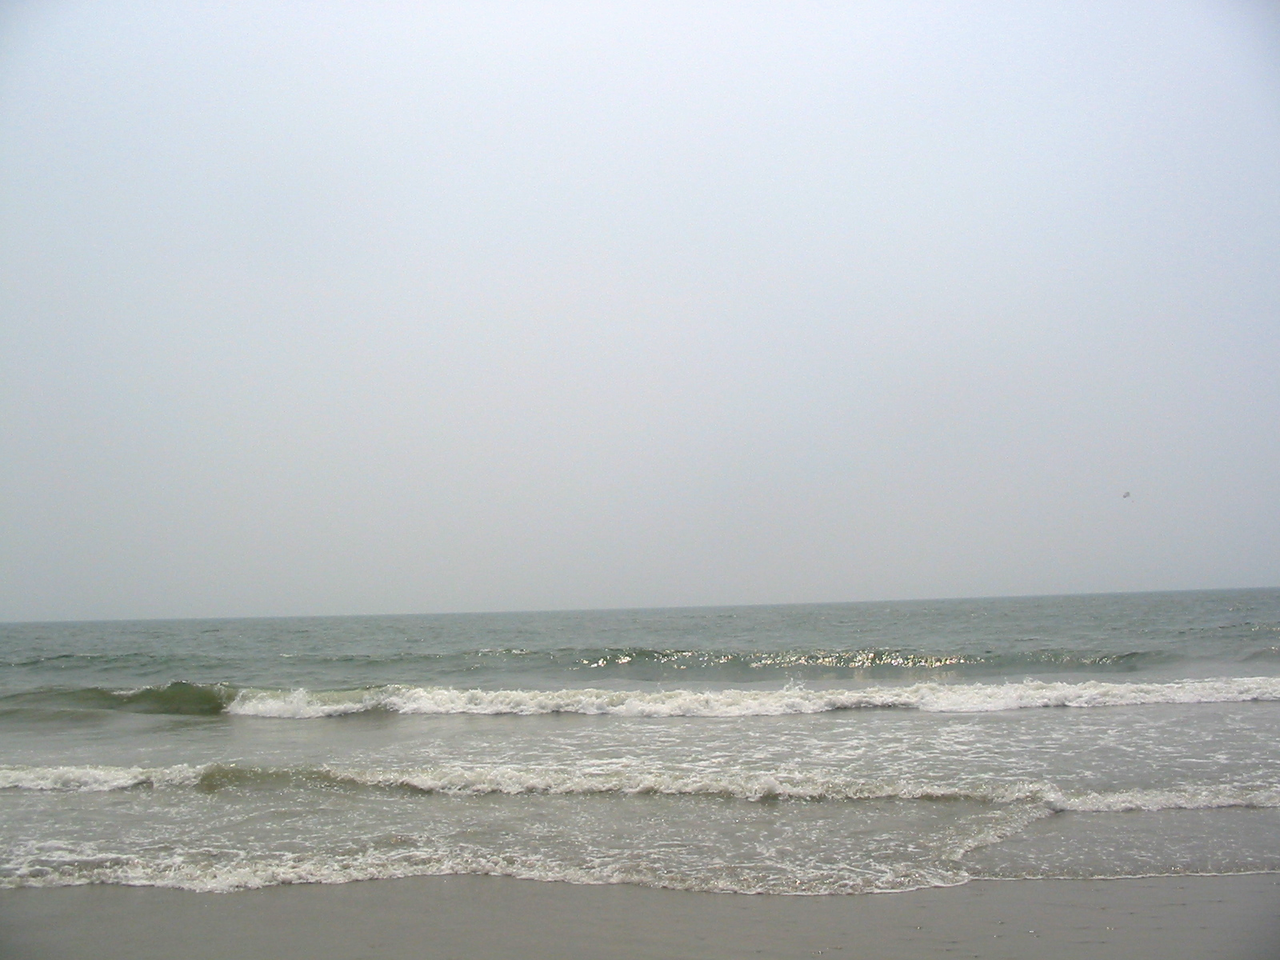 a view of the north Atlantic ocean